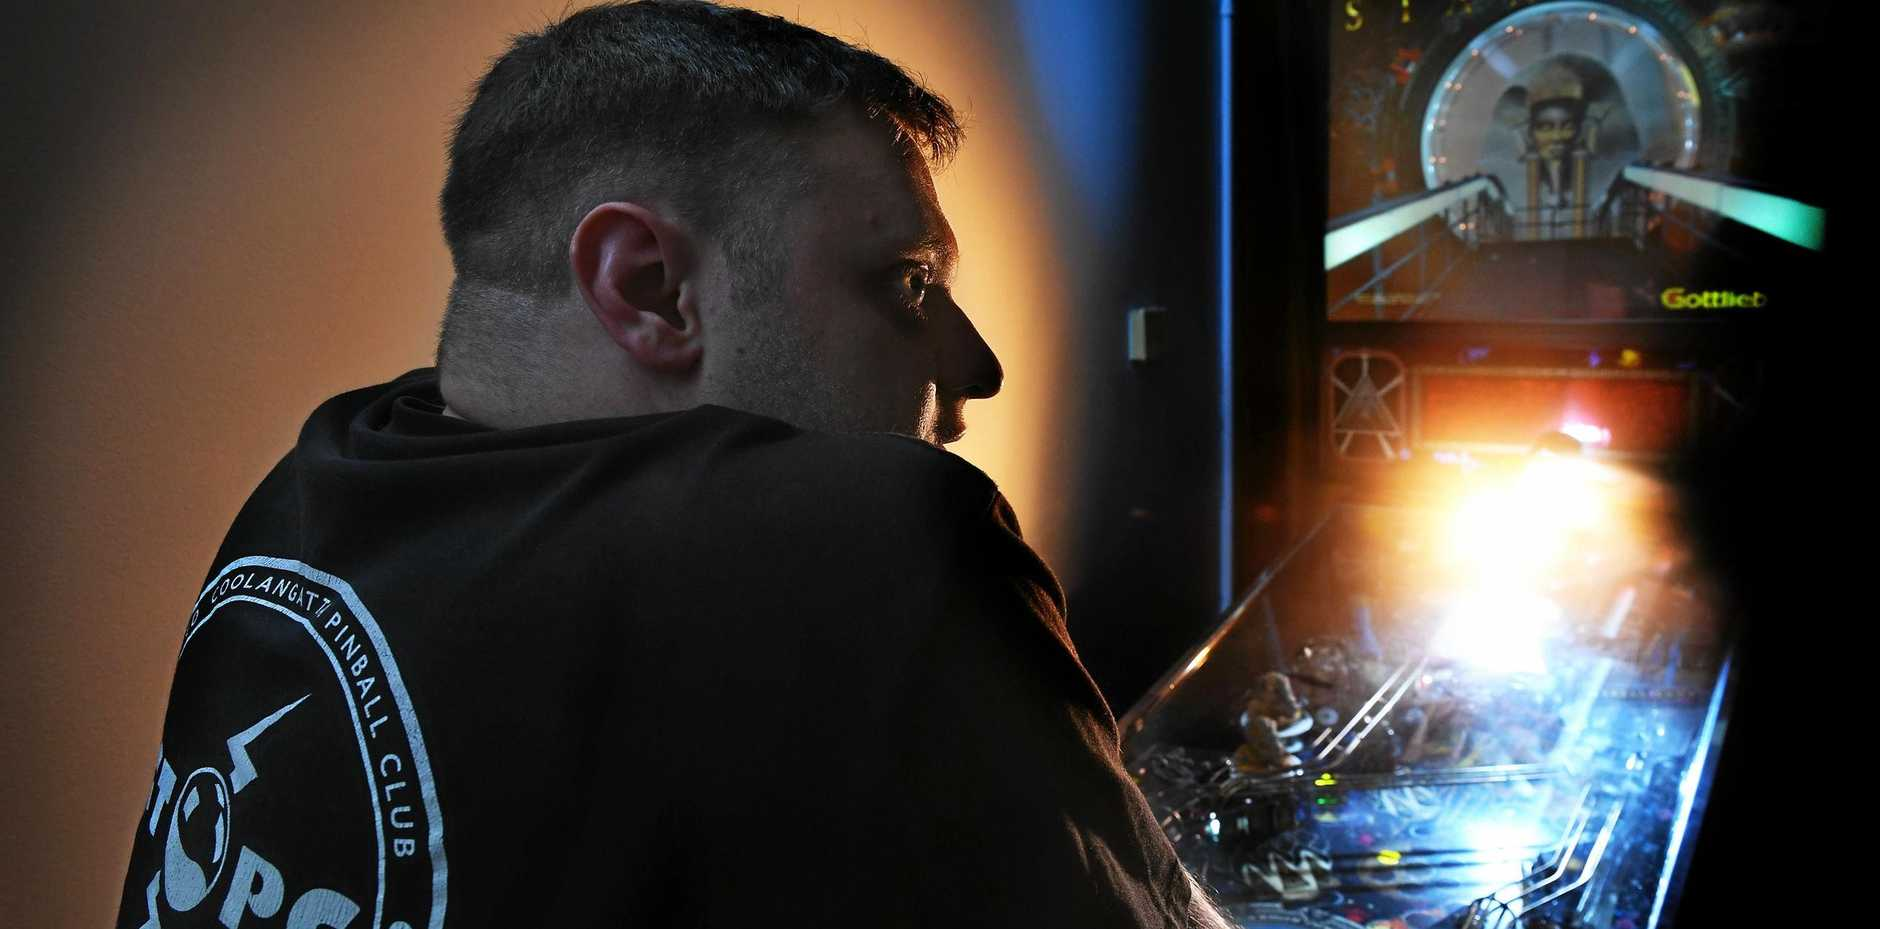 Travis Johnson, of Lismore, has competed in a pinball marathon, known as Death by Pinball - a 24 hour competition in Brisbane.